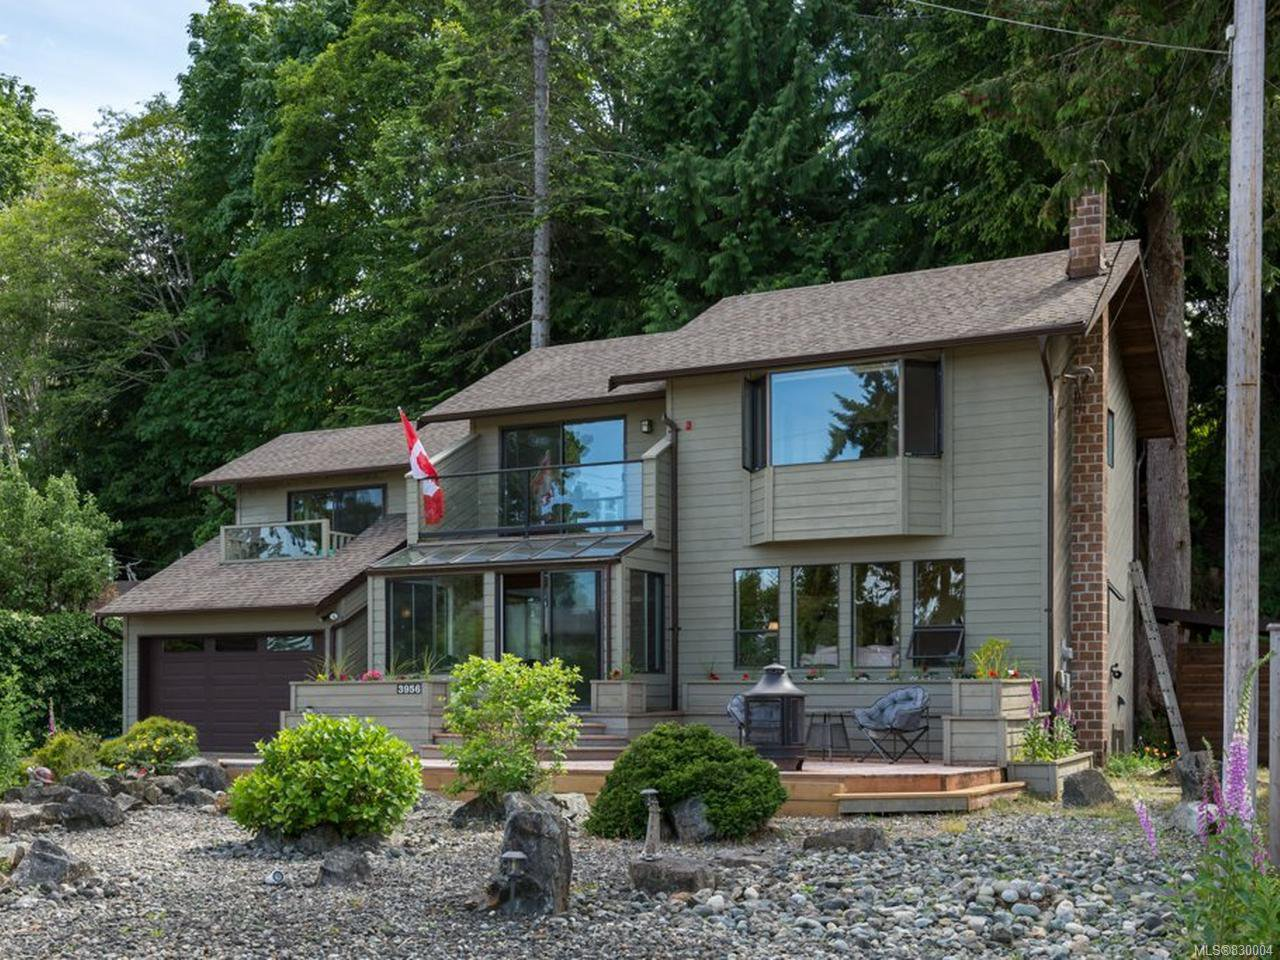 Main Photo: 3956 Bovanis Rd in BOWSER: PQ Bowser/Deep Bay House for sale (Parksville/Qualicum)  : MLS®# 830004